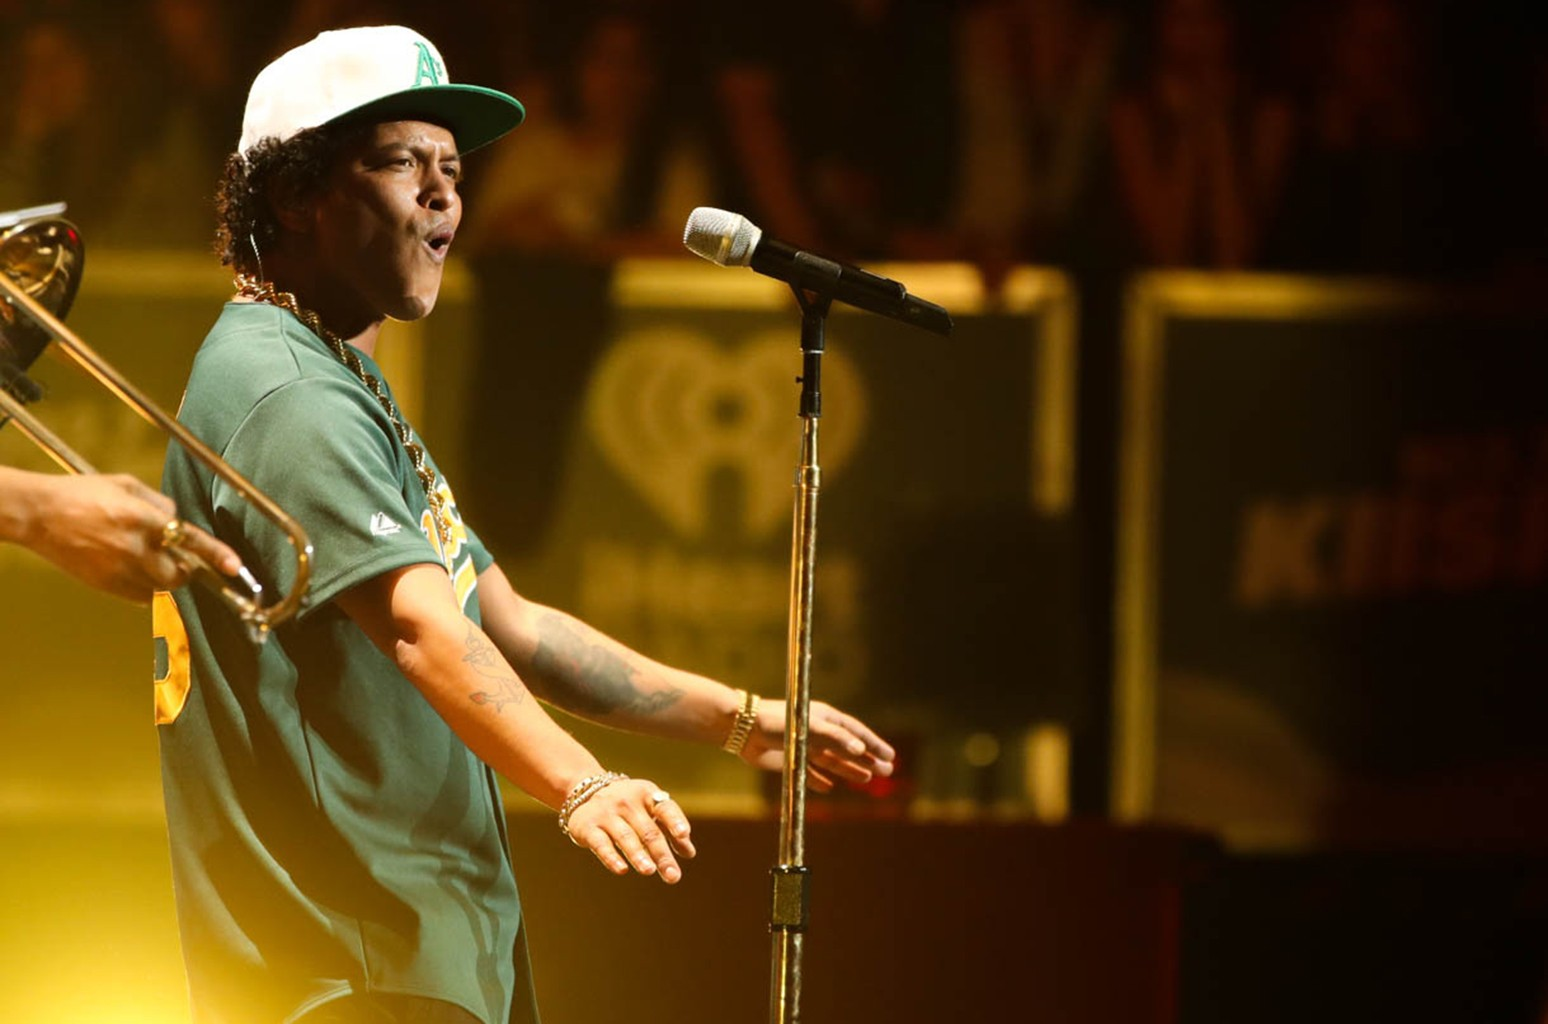 Bruno Mars performs on stage during the 102.7 KIIS FM's Jingle Ball 2016 at Staples Center on Dec. 2, 2016 in Los Angeles.